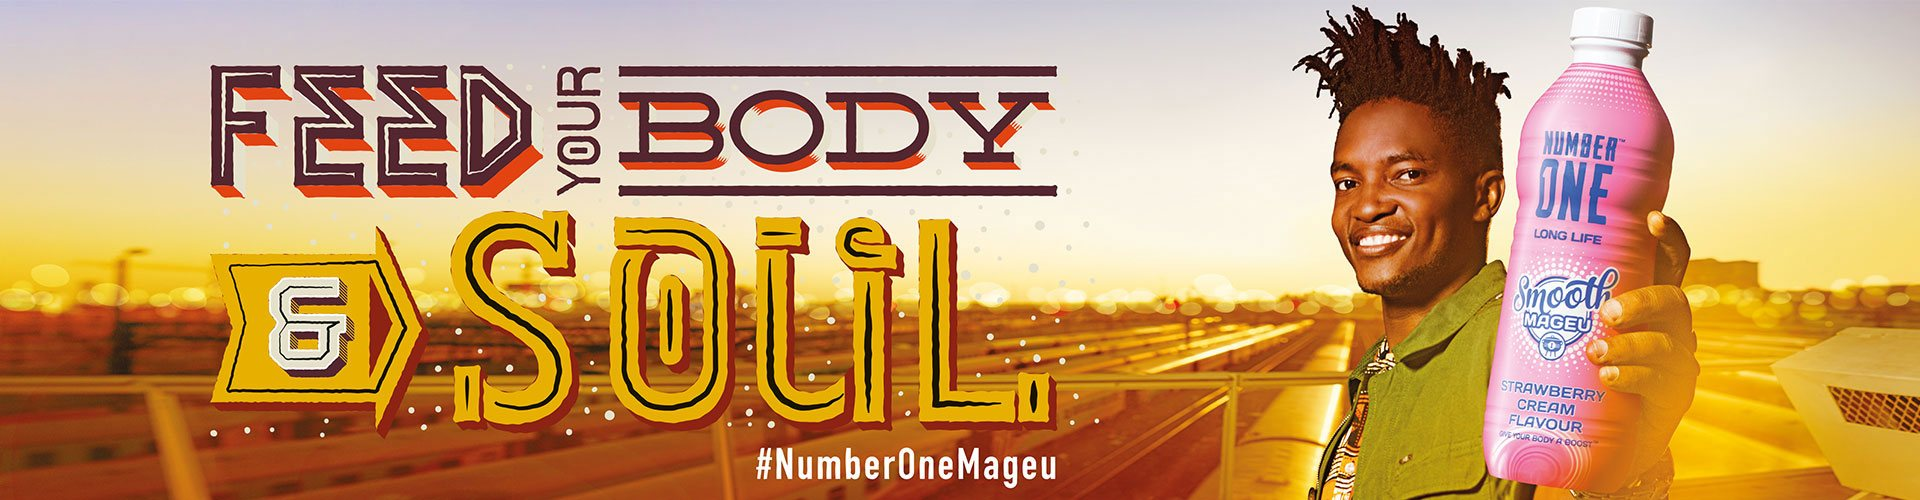 Number one Mageu - Feed your Body and Soul